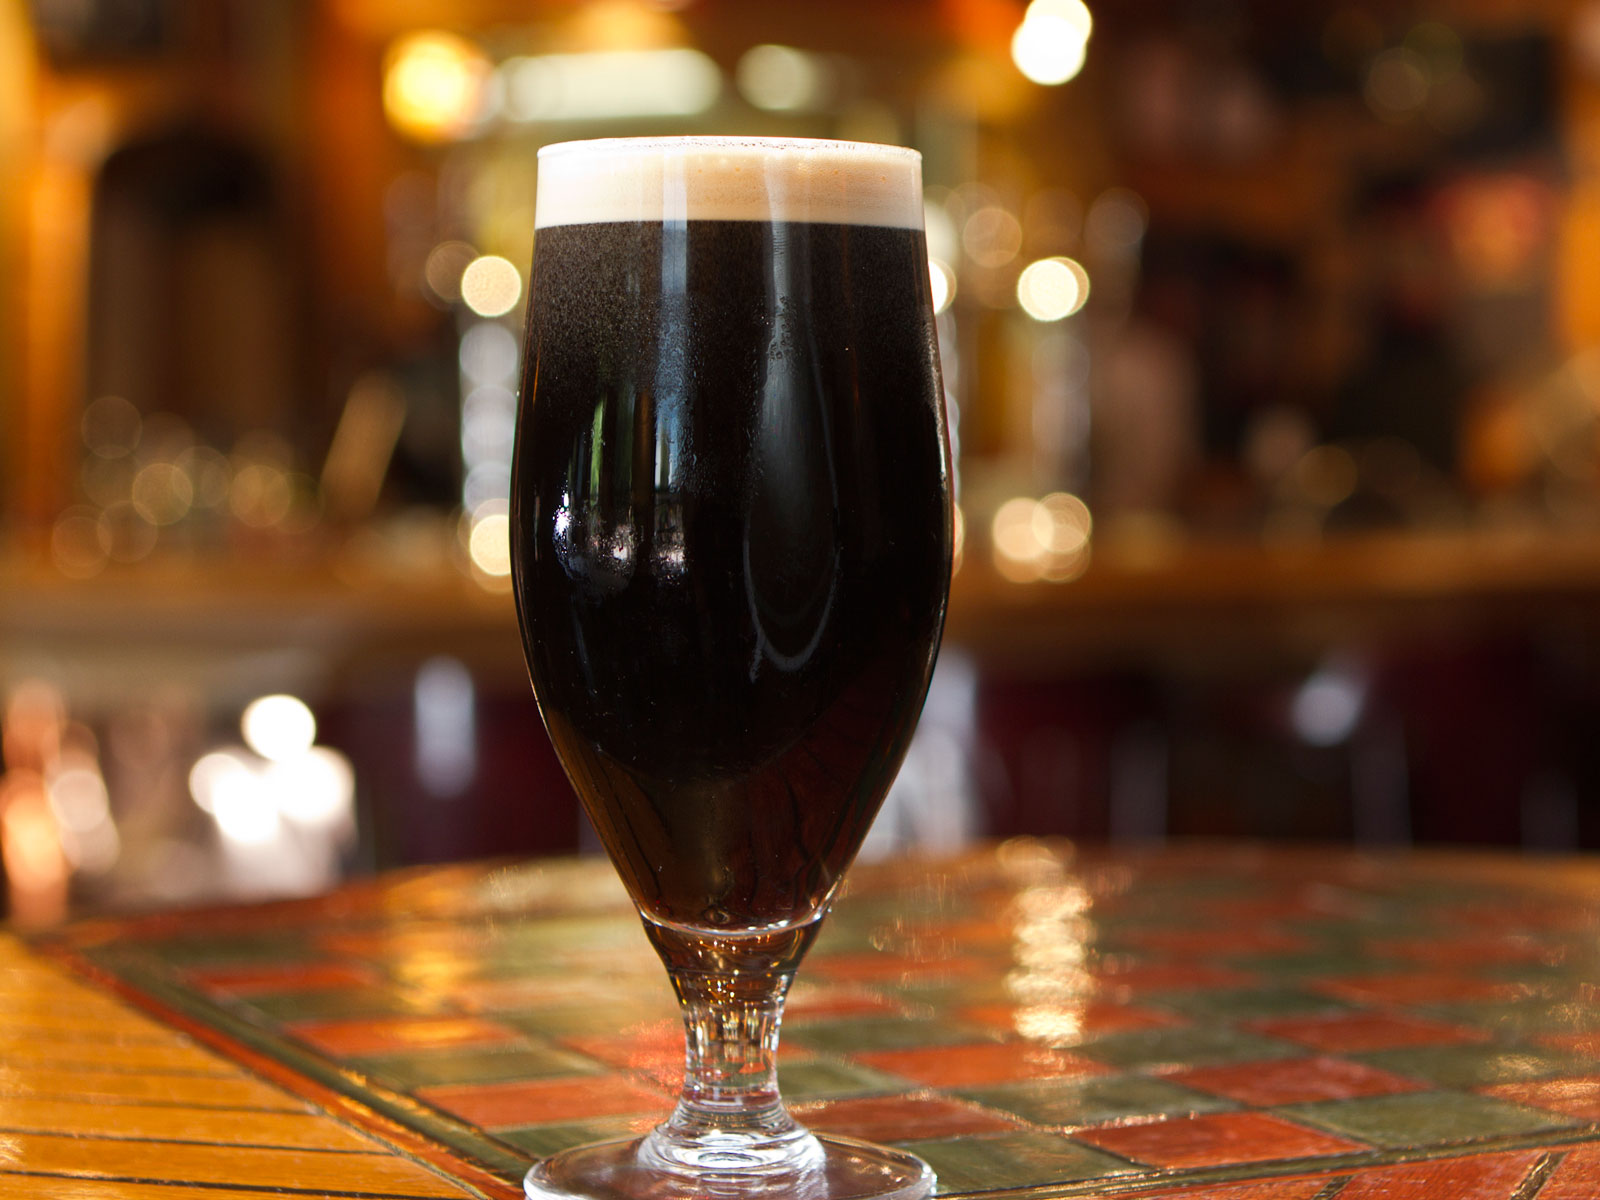 Barrel-Aged Stouts Are All the Rage — But That Doesn't Mean They're Always Better